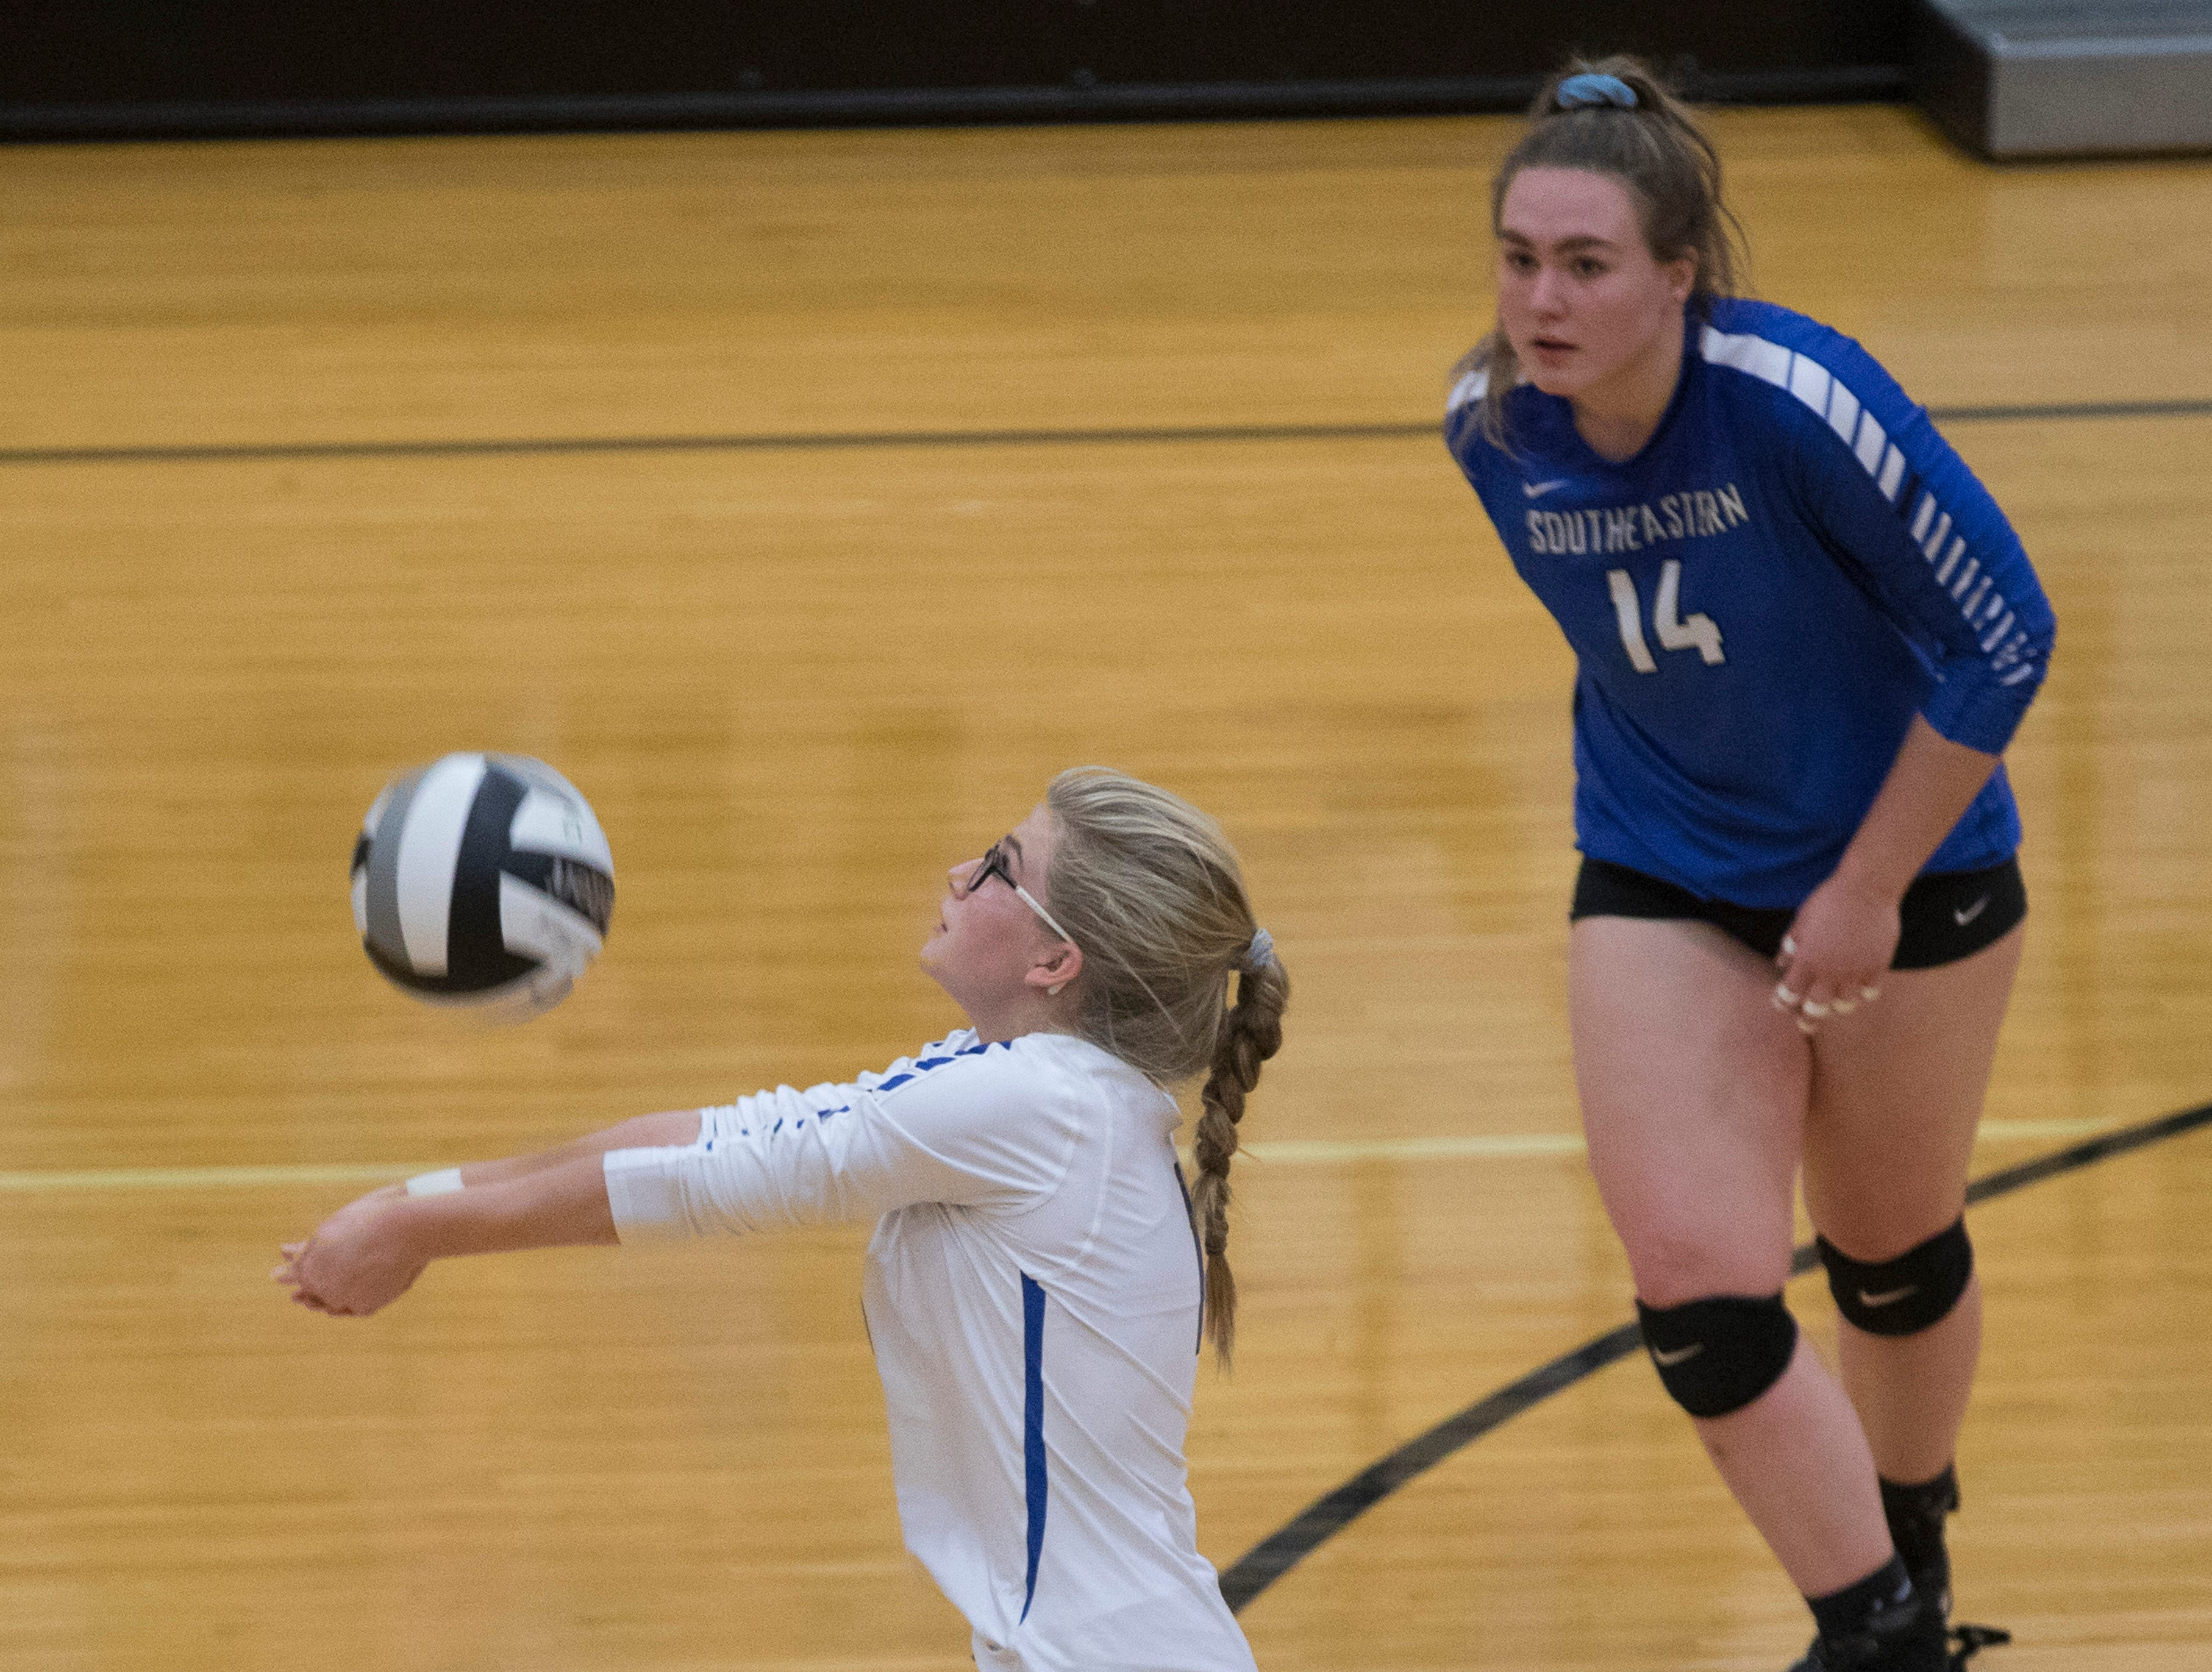 Southeastern defeated Zane Trace Saturday afternoon 3-0 in a Division III volleyball district finals game in Waverly, Ohio. The Panthers will go on to play Berlin Highland on Thursday, November 1, 2018, in Logan, Ohio.